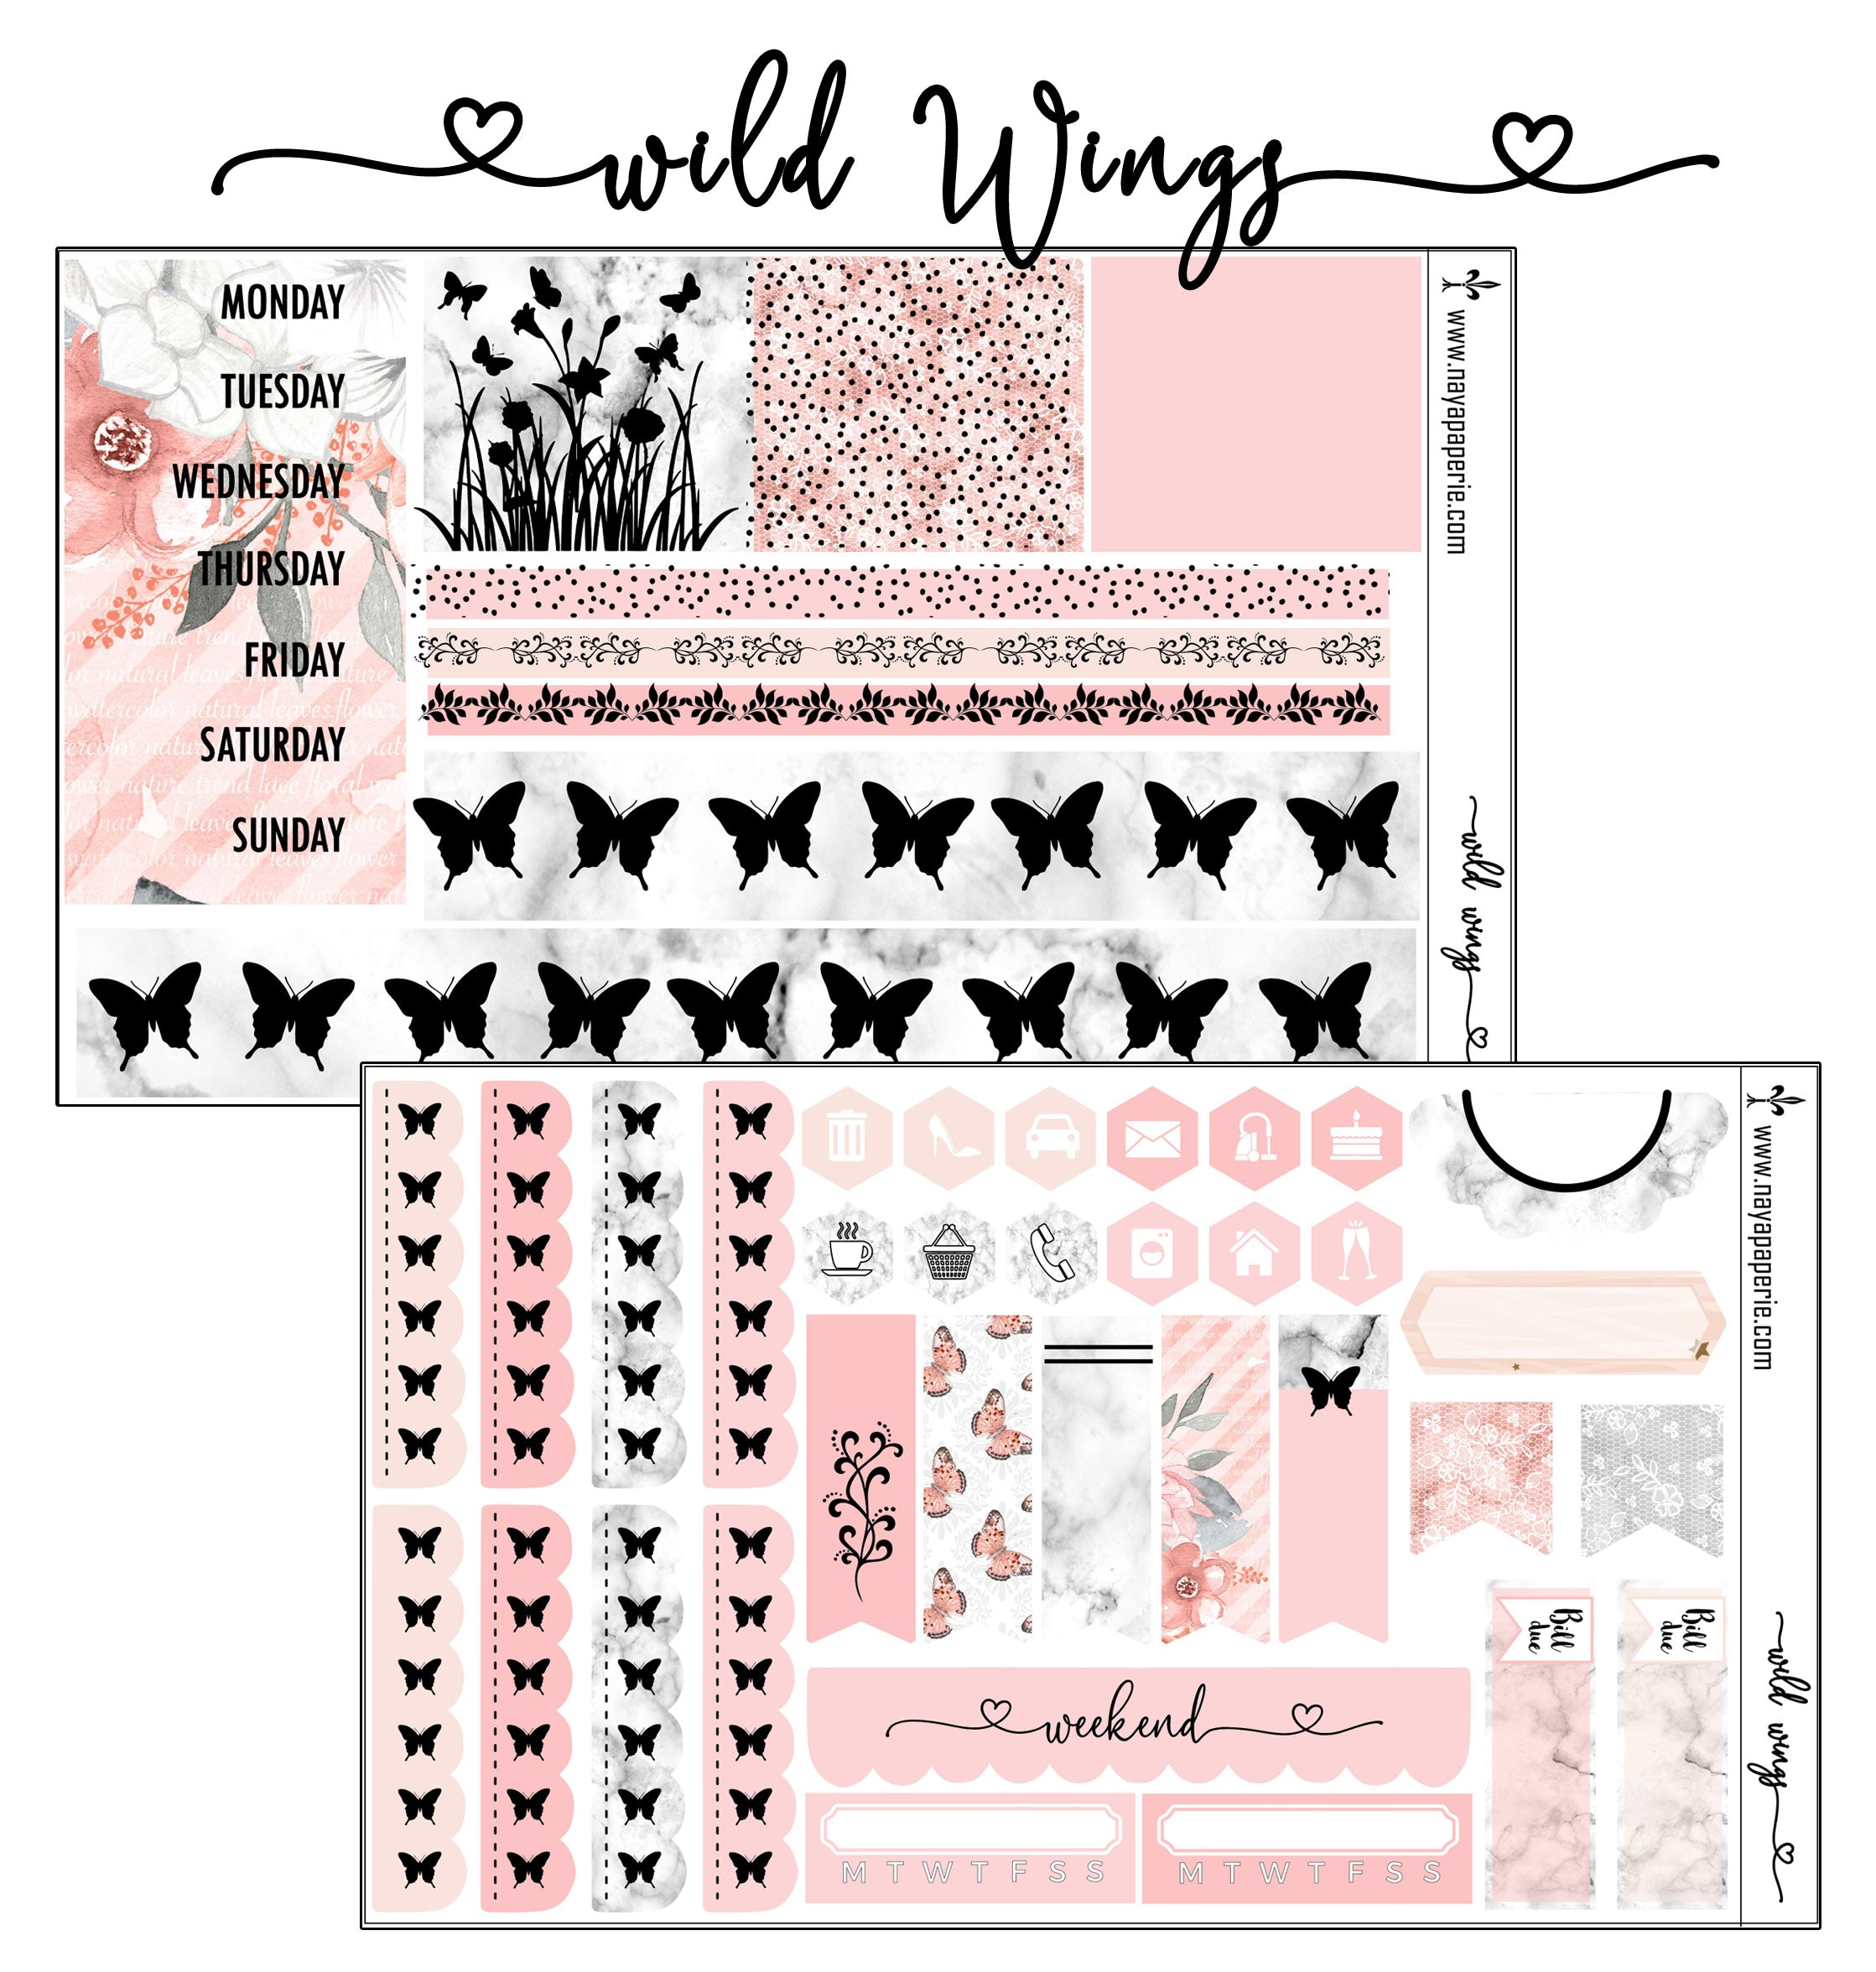 Wild Wings foiled stickers kit- 5 sheets